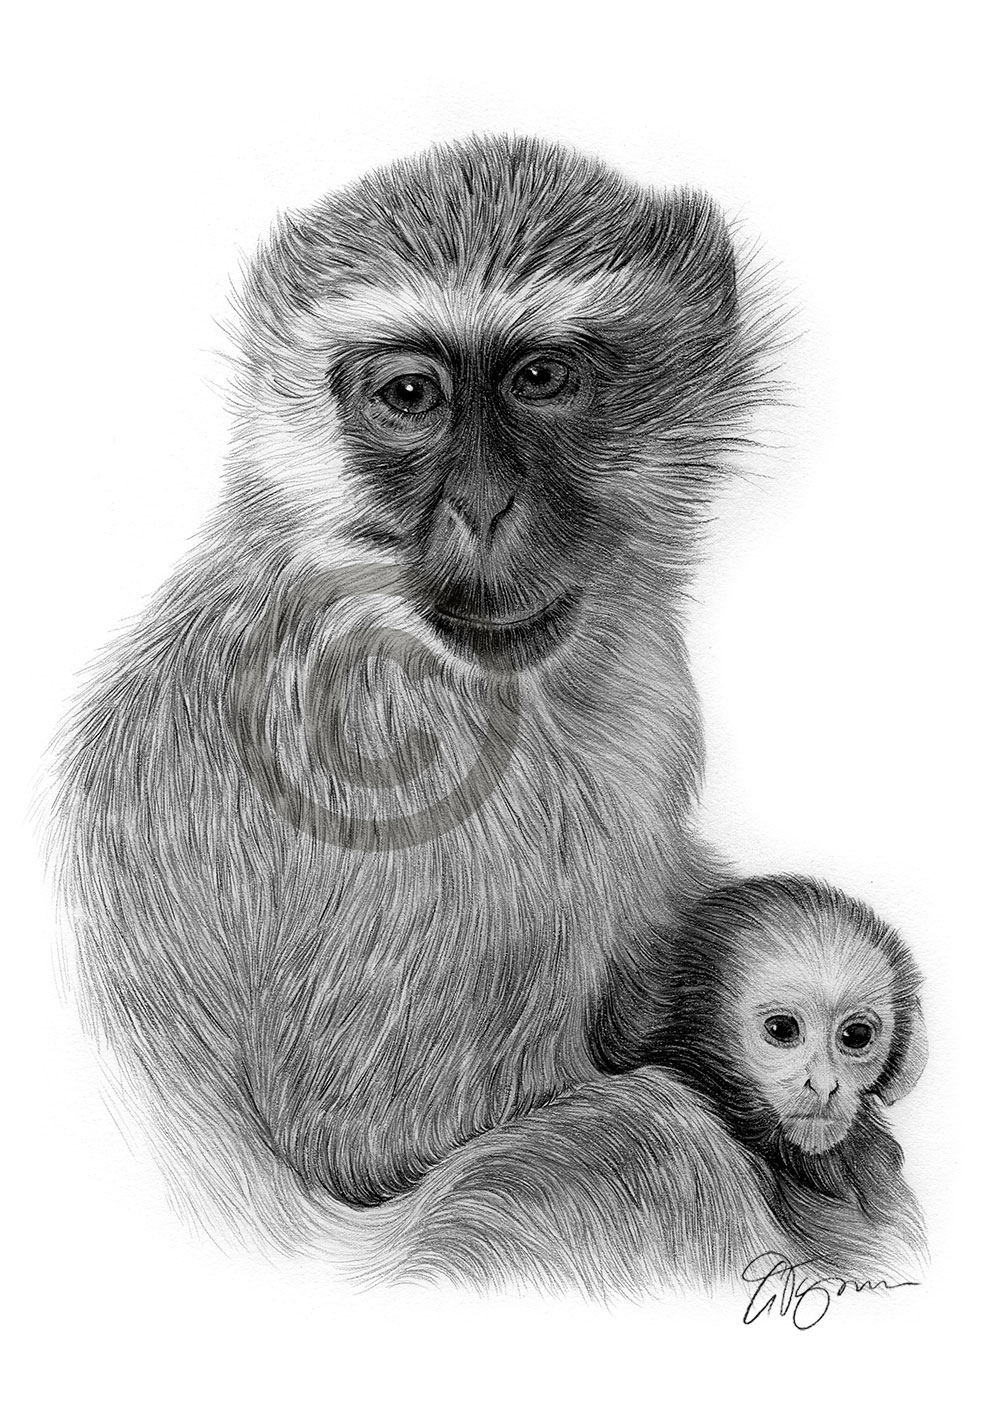 Vervet monkey and baby pencil drawing by artist Gary Tymon